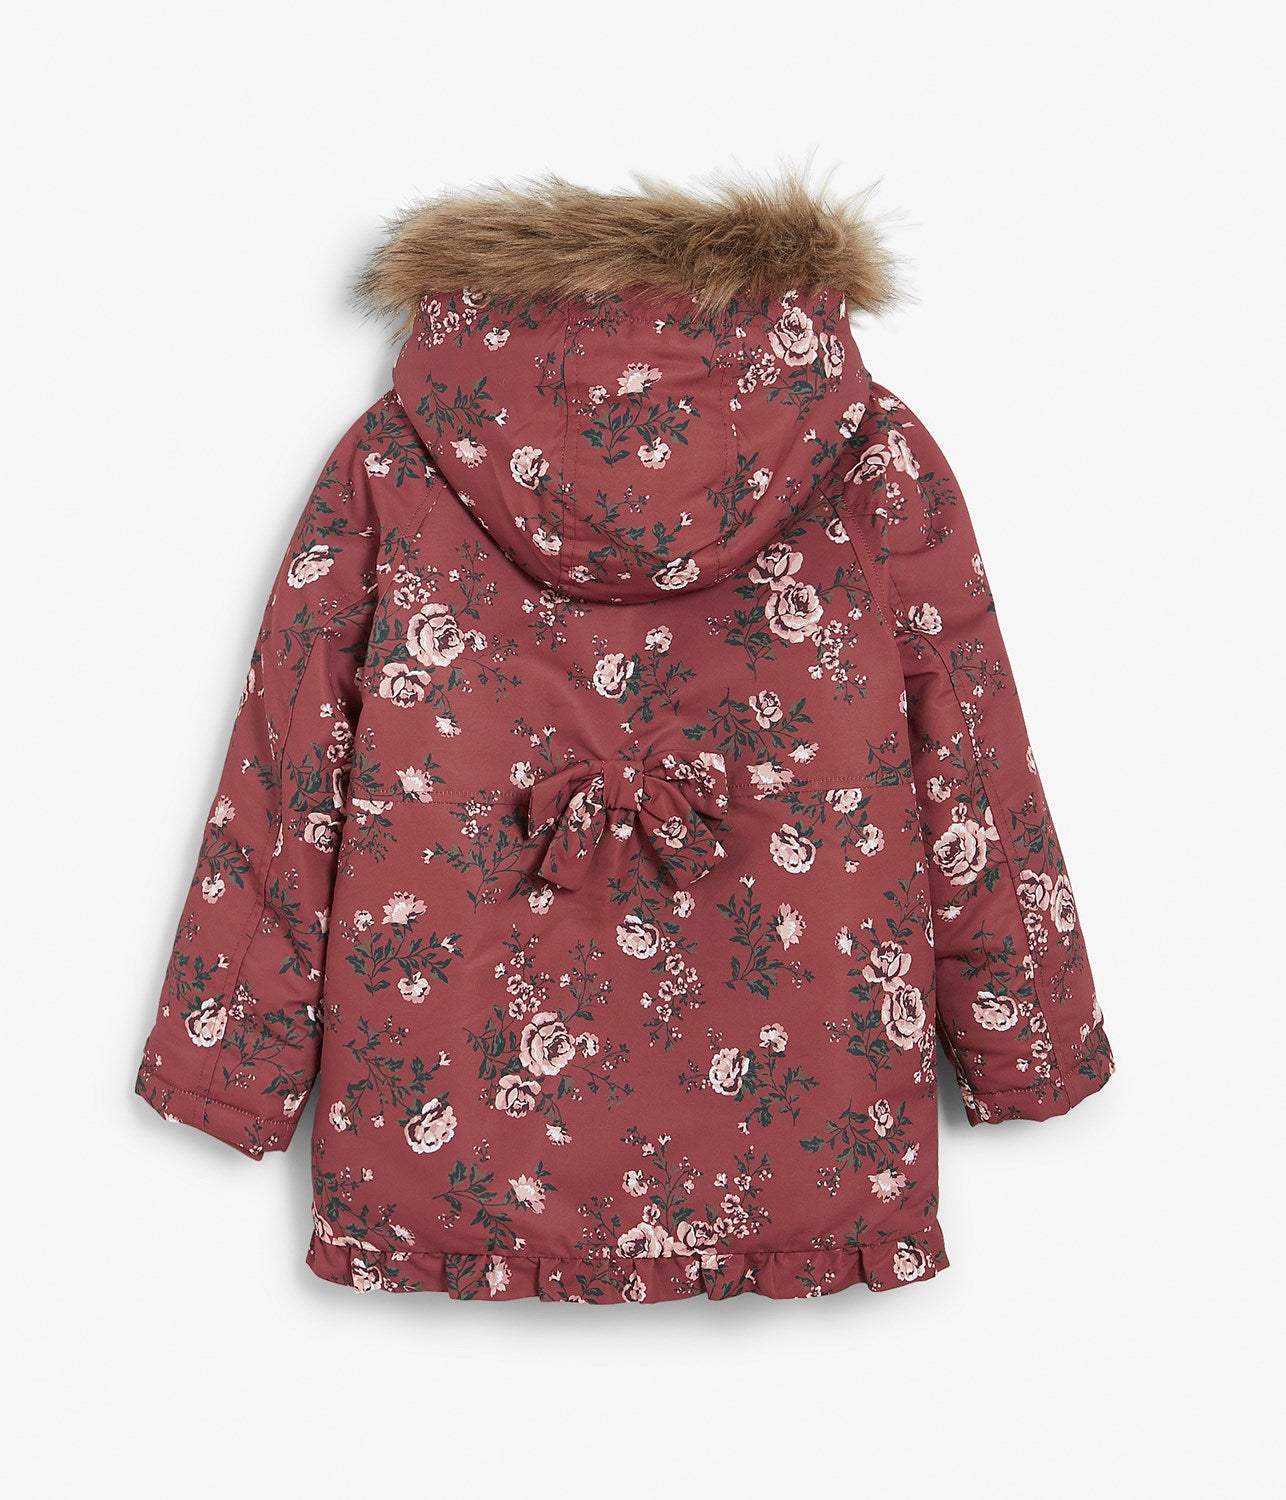 Kids rose floral print rain jacket with hood